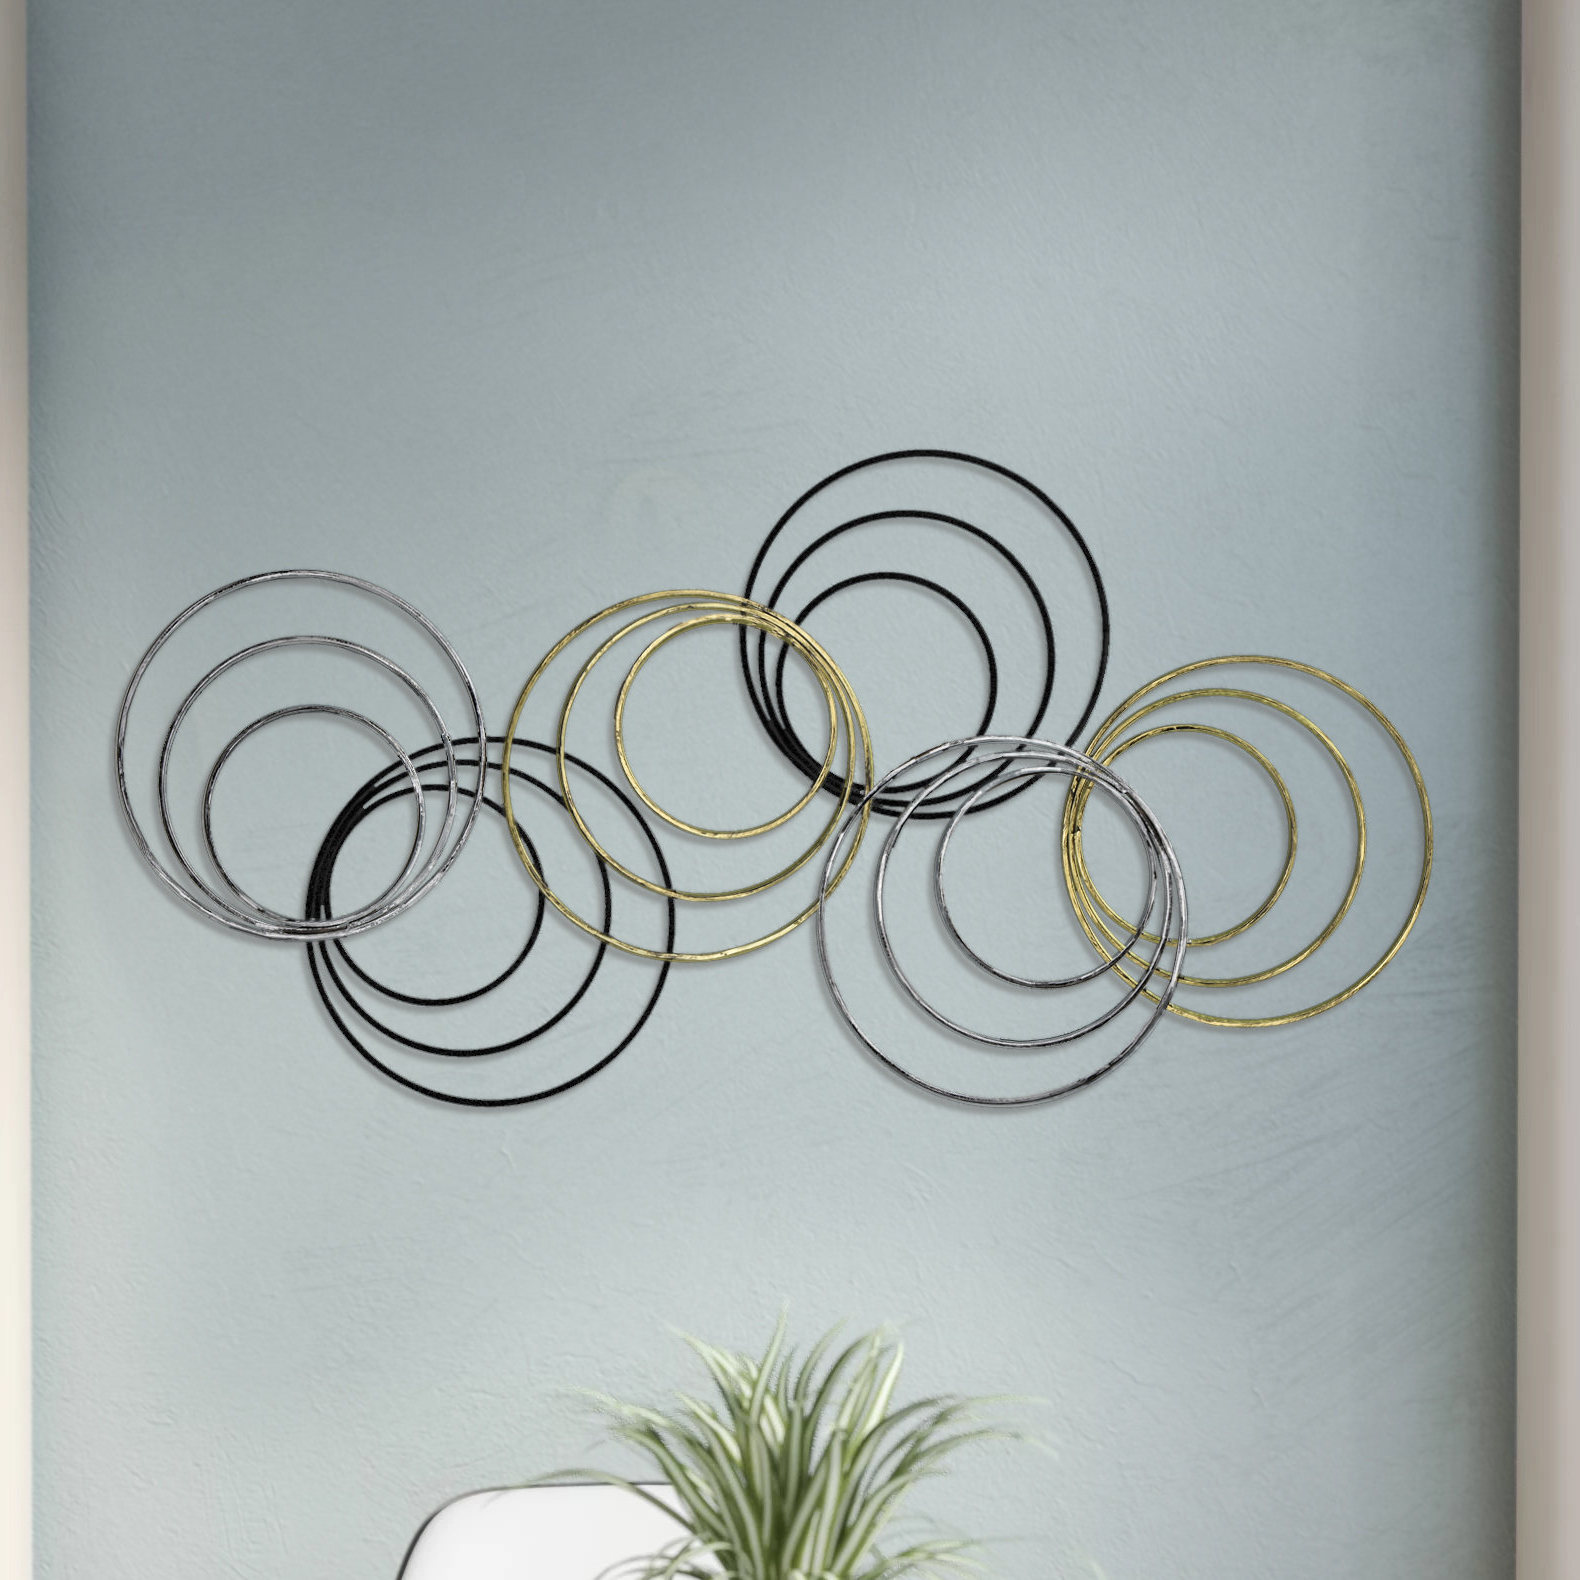 Rings Wall Decor In Well Known George Oliver Rings Wall Décor & Reviews (Gallery 7 of 20)